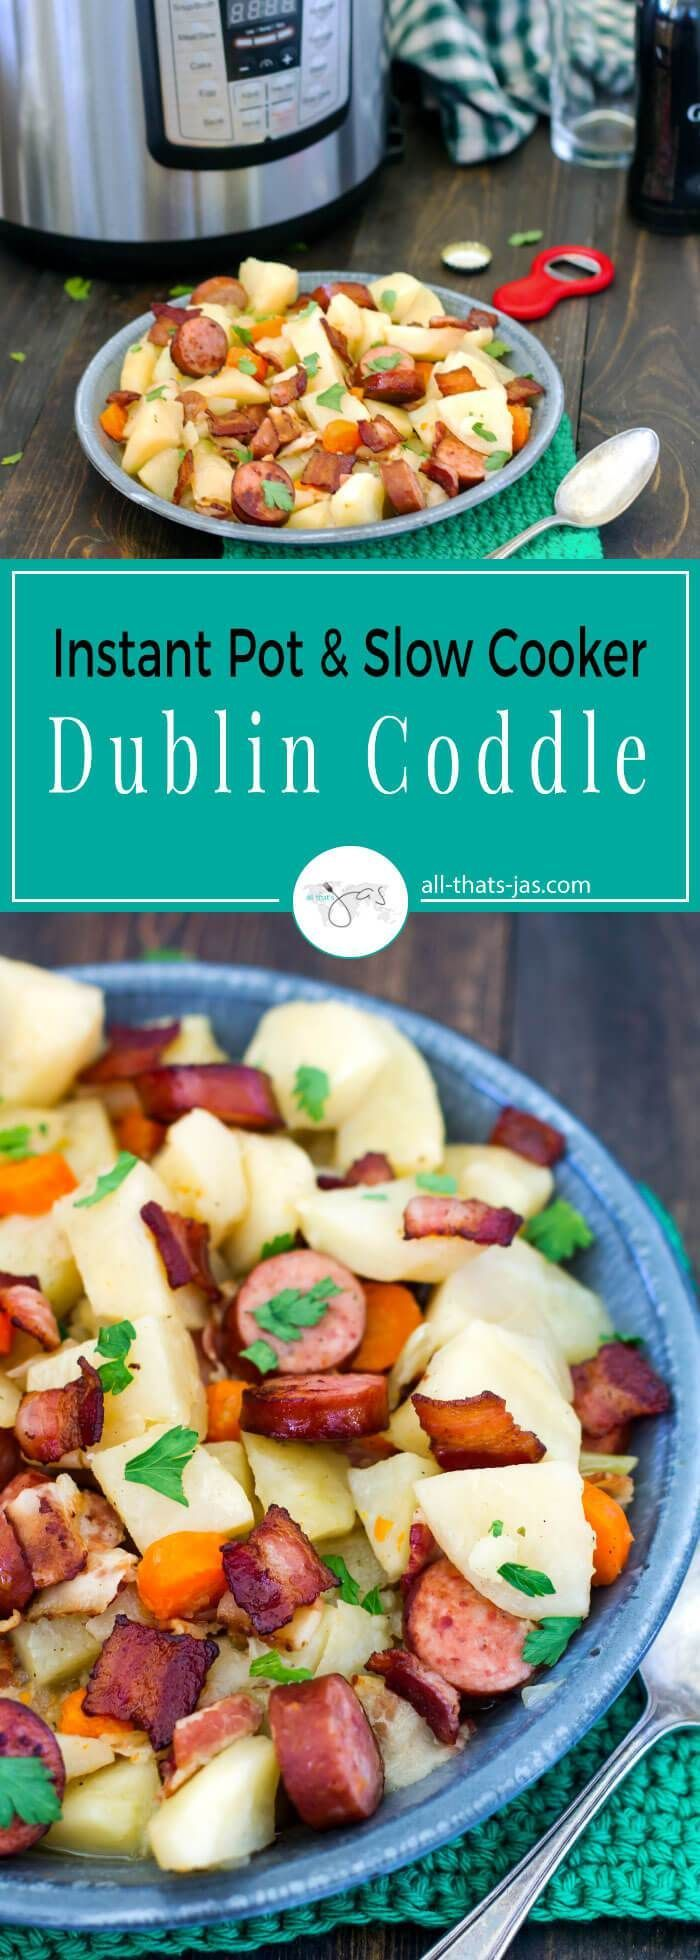 Dublin coddle | recipes | recipe | low ingredient | easy | the easiest | quick | simple | make ahead |  dinner ideas | party food | st patrick's day | st patricks | traditional | irish food